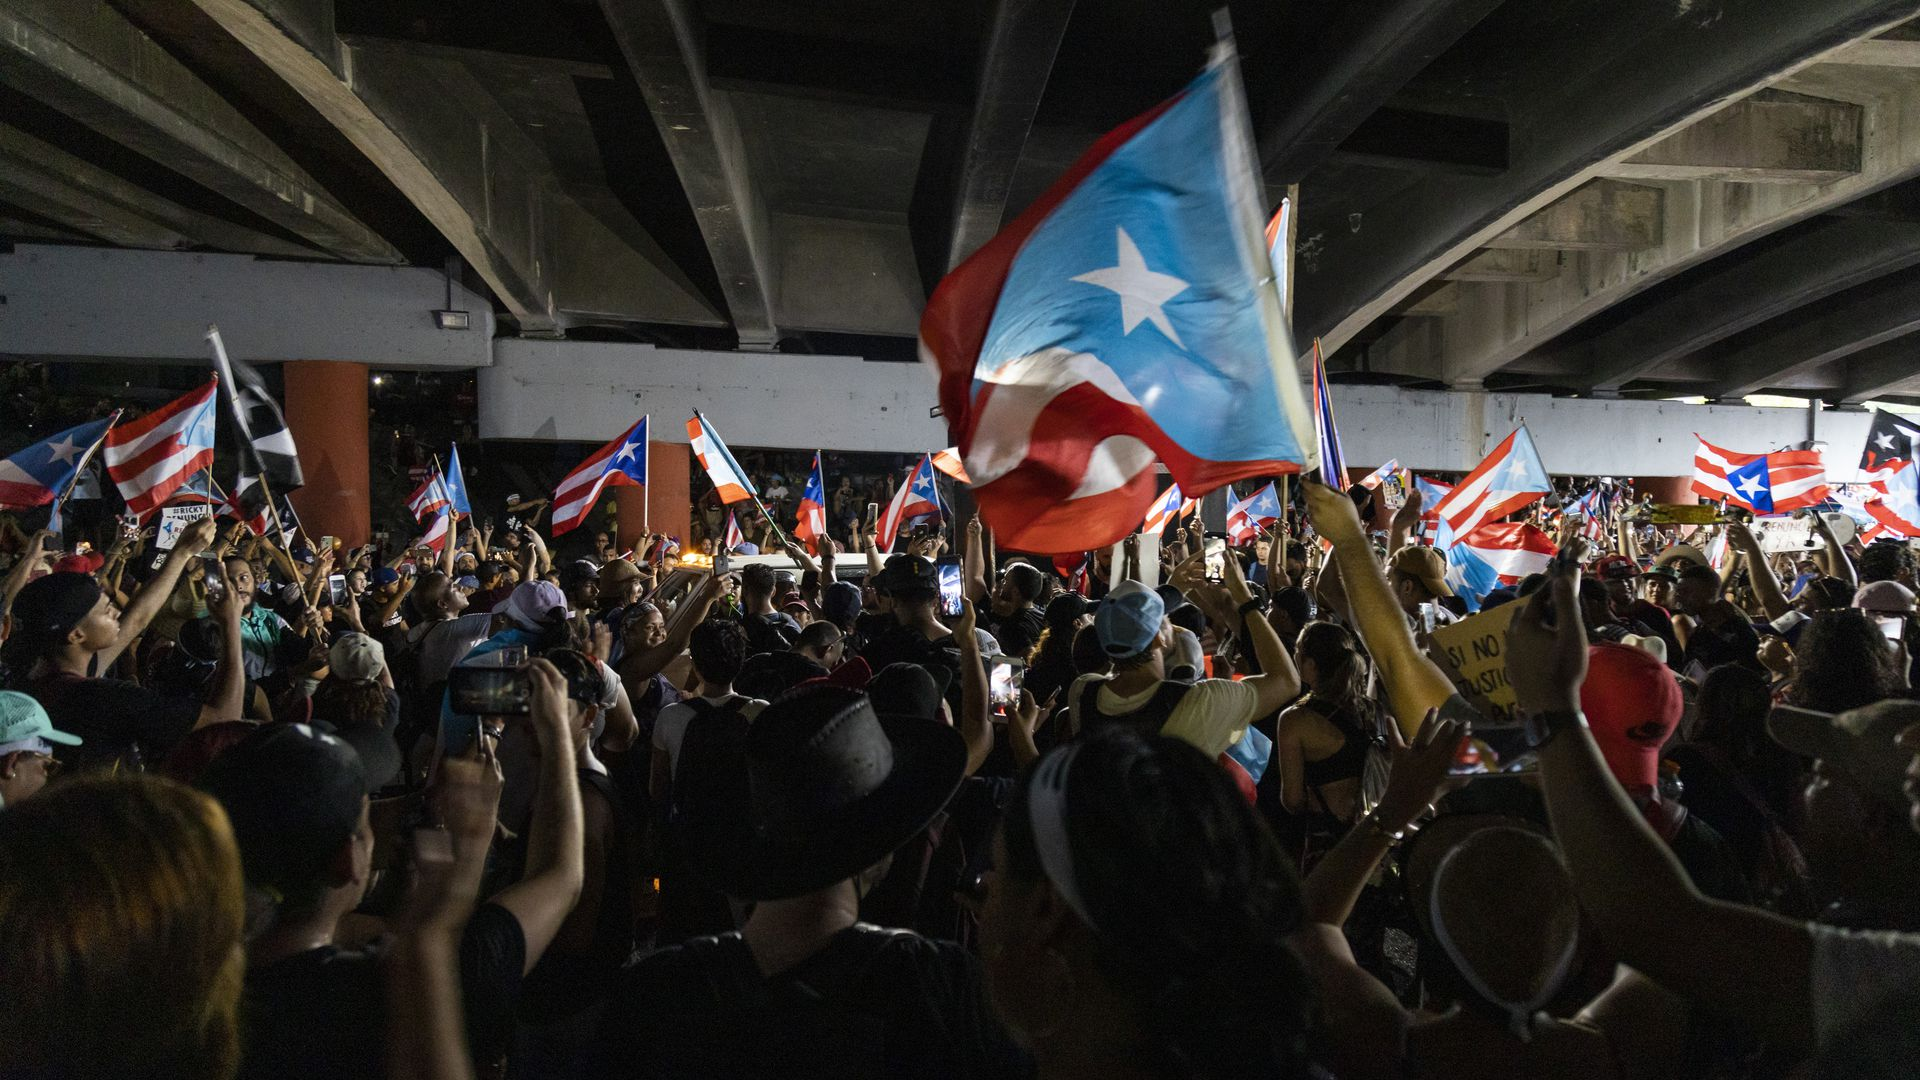 Puerto Rico police target crowds with tear gas in bid to break up massive street protests